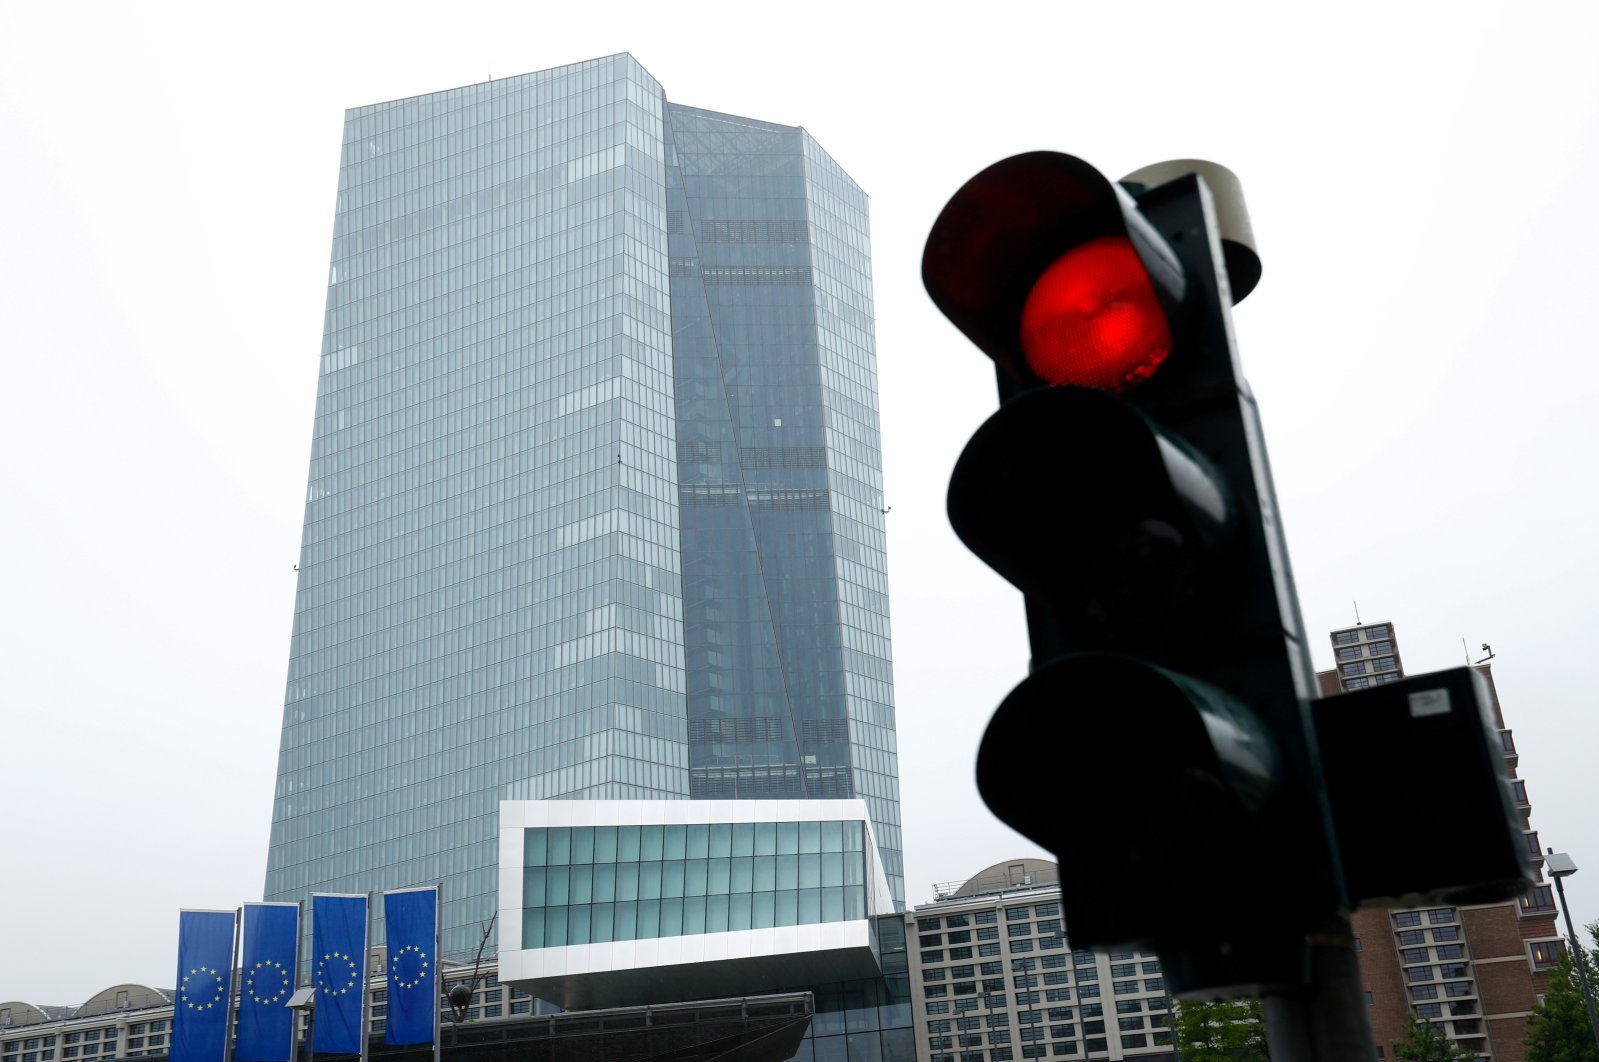 The headquarters of the European Central Bank (ECB) in Frankfurt, Germany, July 8, 2020. (Reuters Photo)